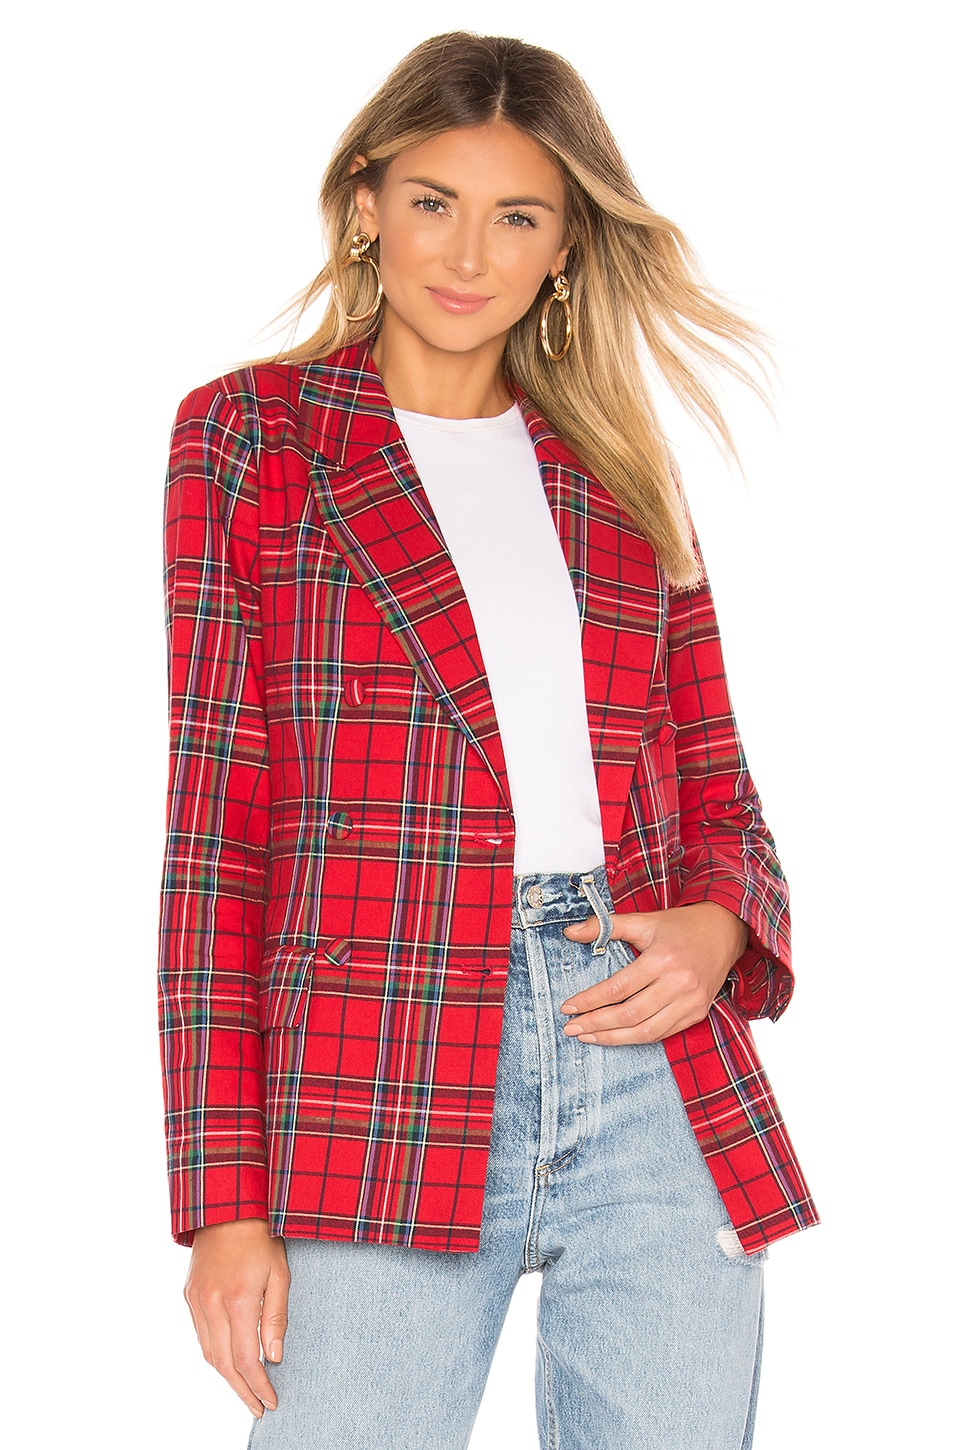 L'ACADEMIE The Ruth Jacket in Red